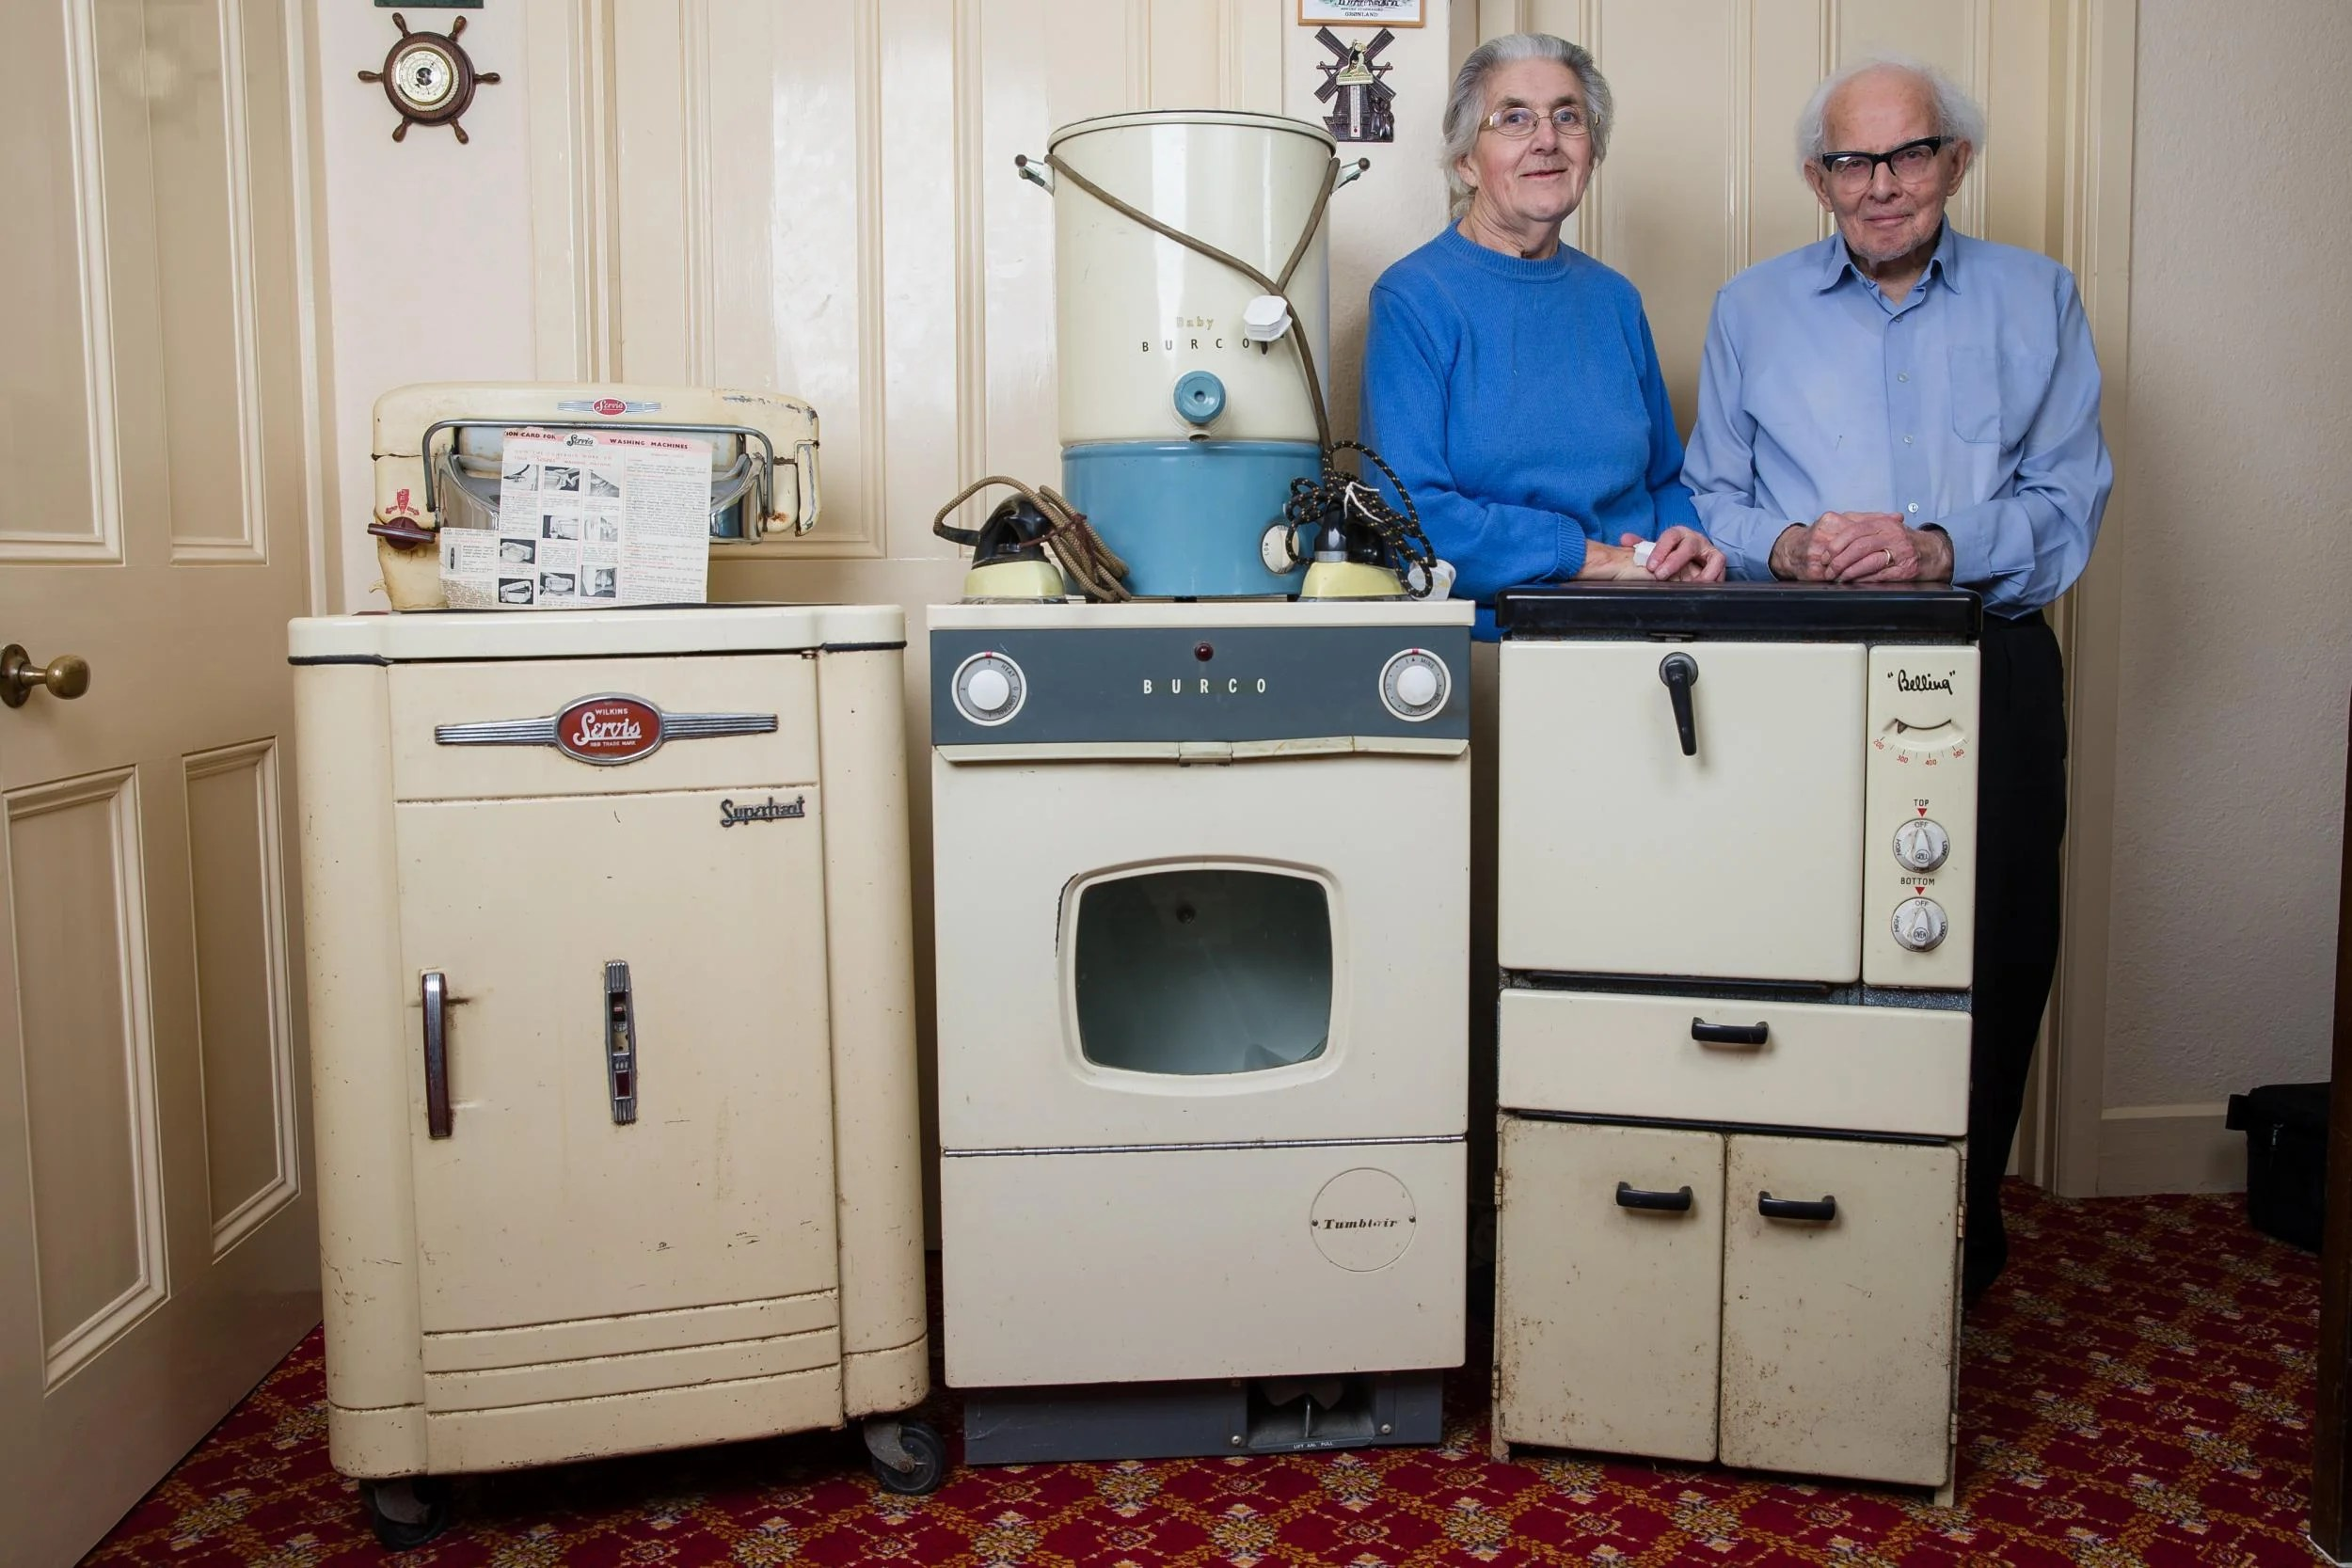 Elderly Couple S Household Appliances Still Work After 50 Years